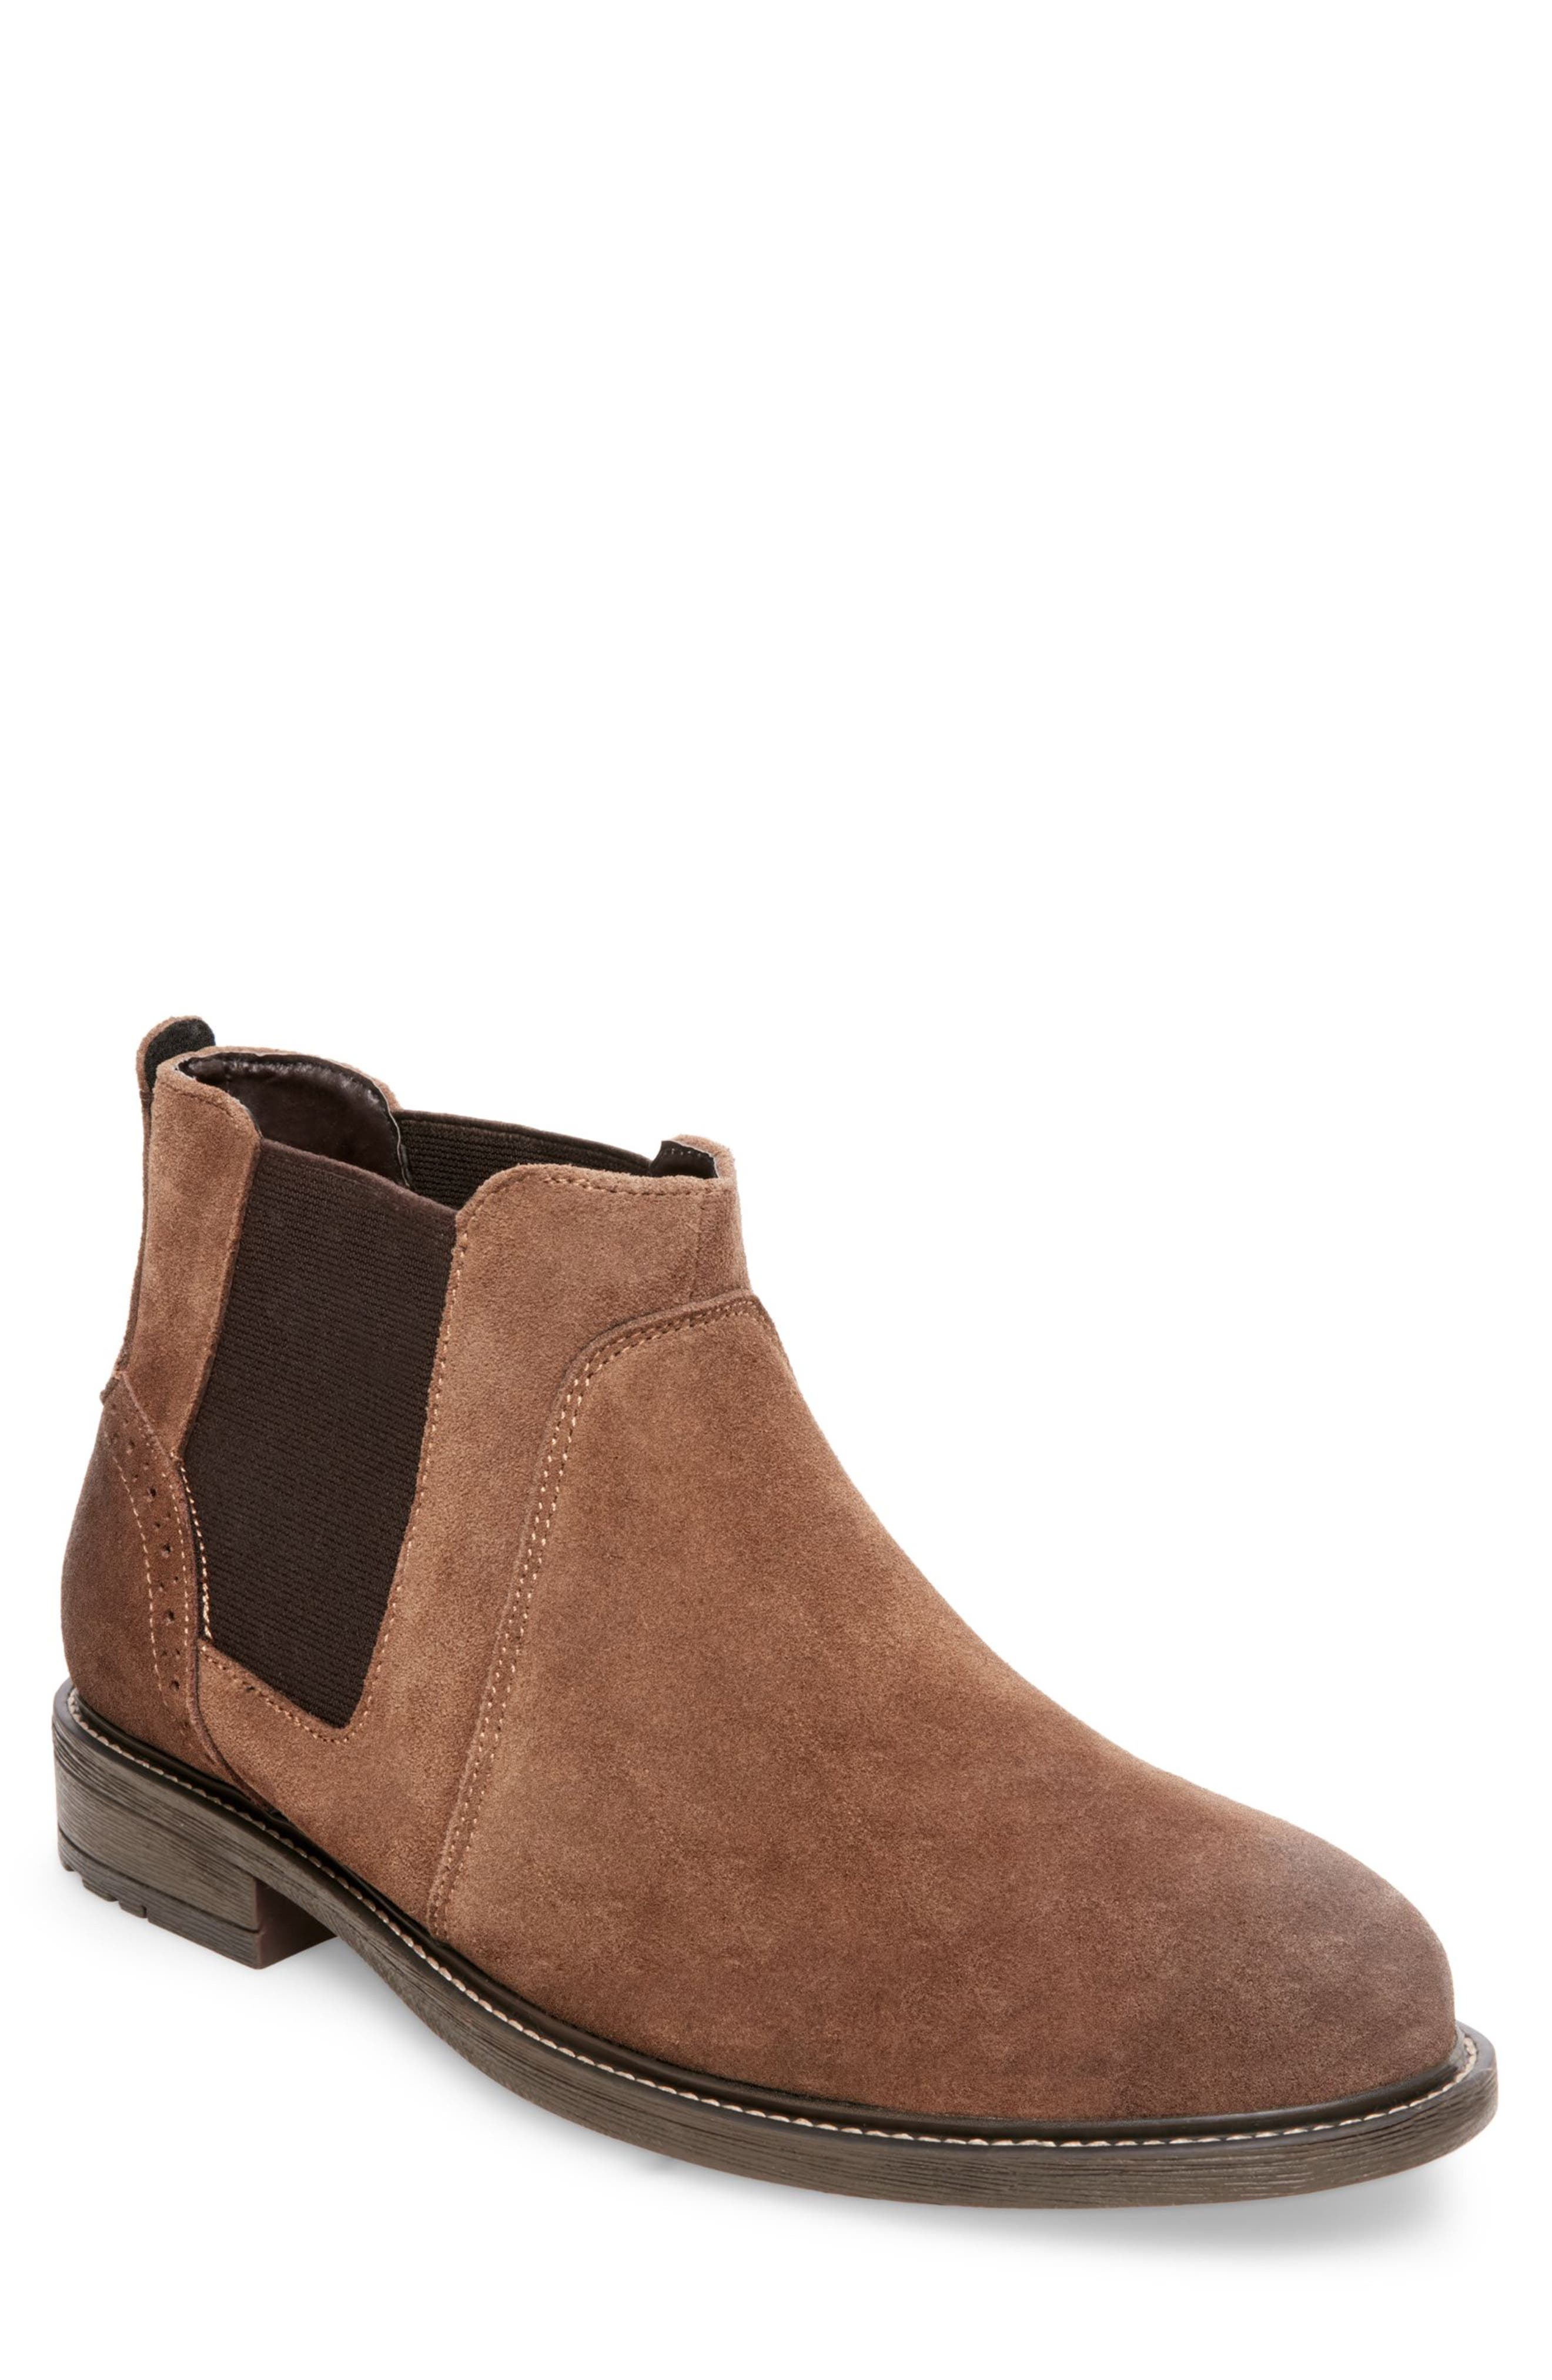 Tampa Chelsea Boot,                             Main thumbnail 1, color,                             CAMEL SUEDE